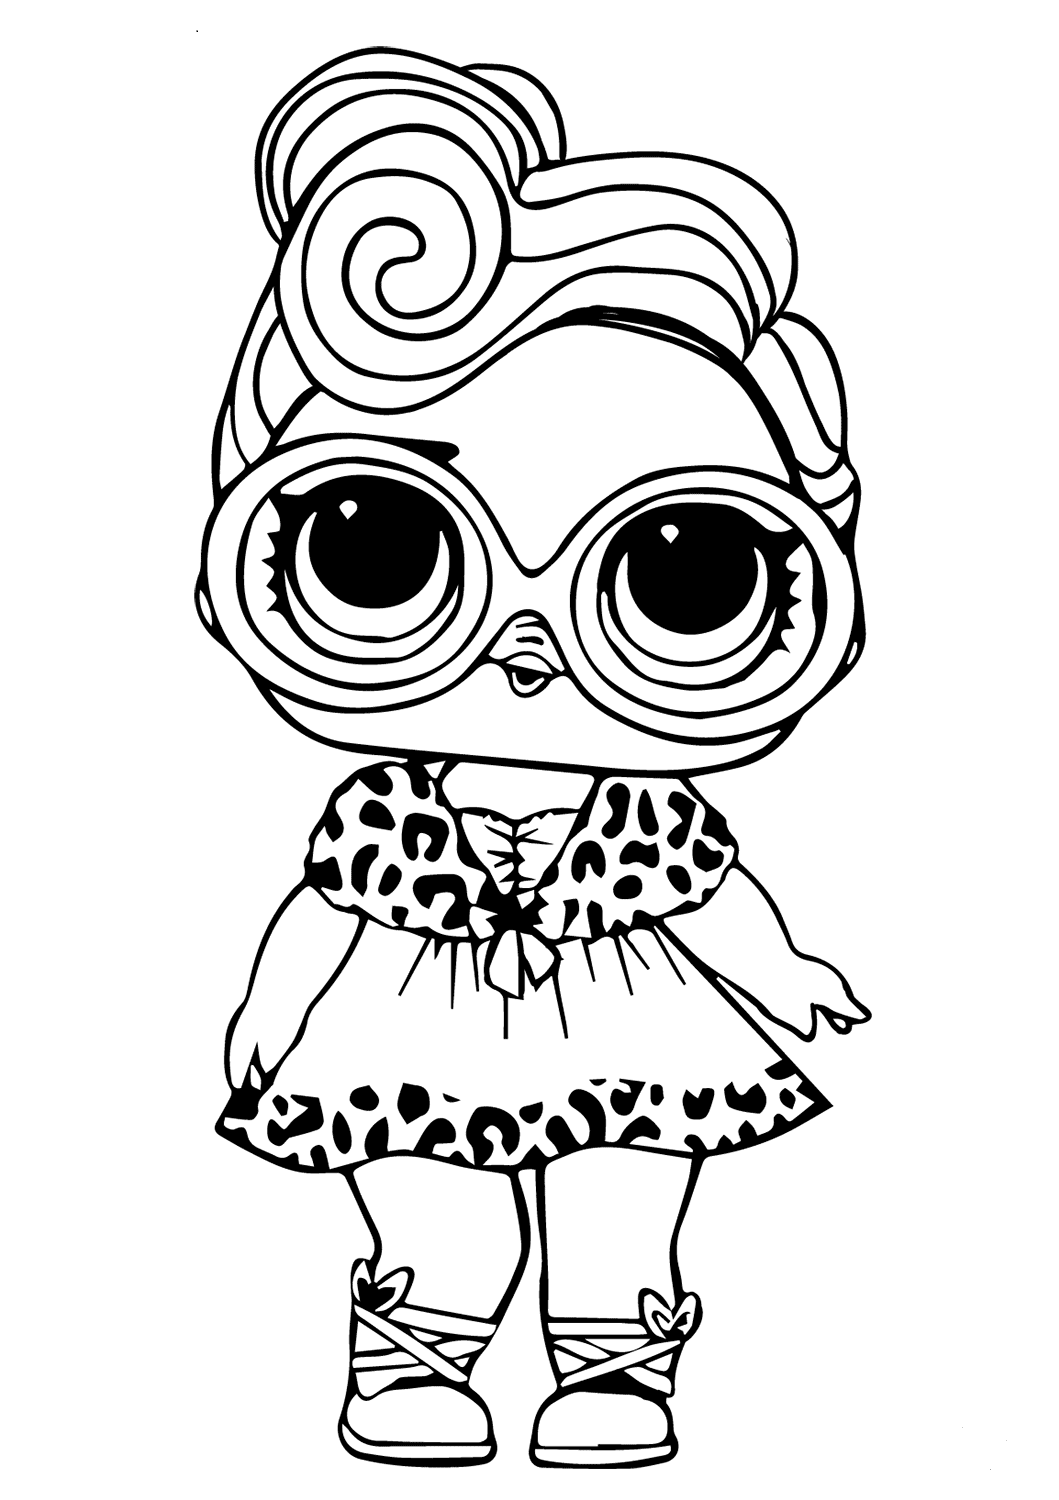 Free Printable Lol Doll Coloring Pictures Dollface Free Printable Coloring Pages Coloring Pages Coloring Pictures